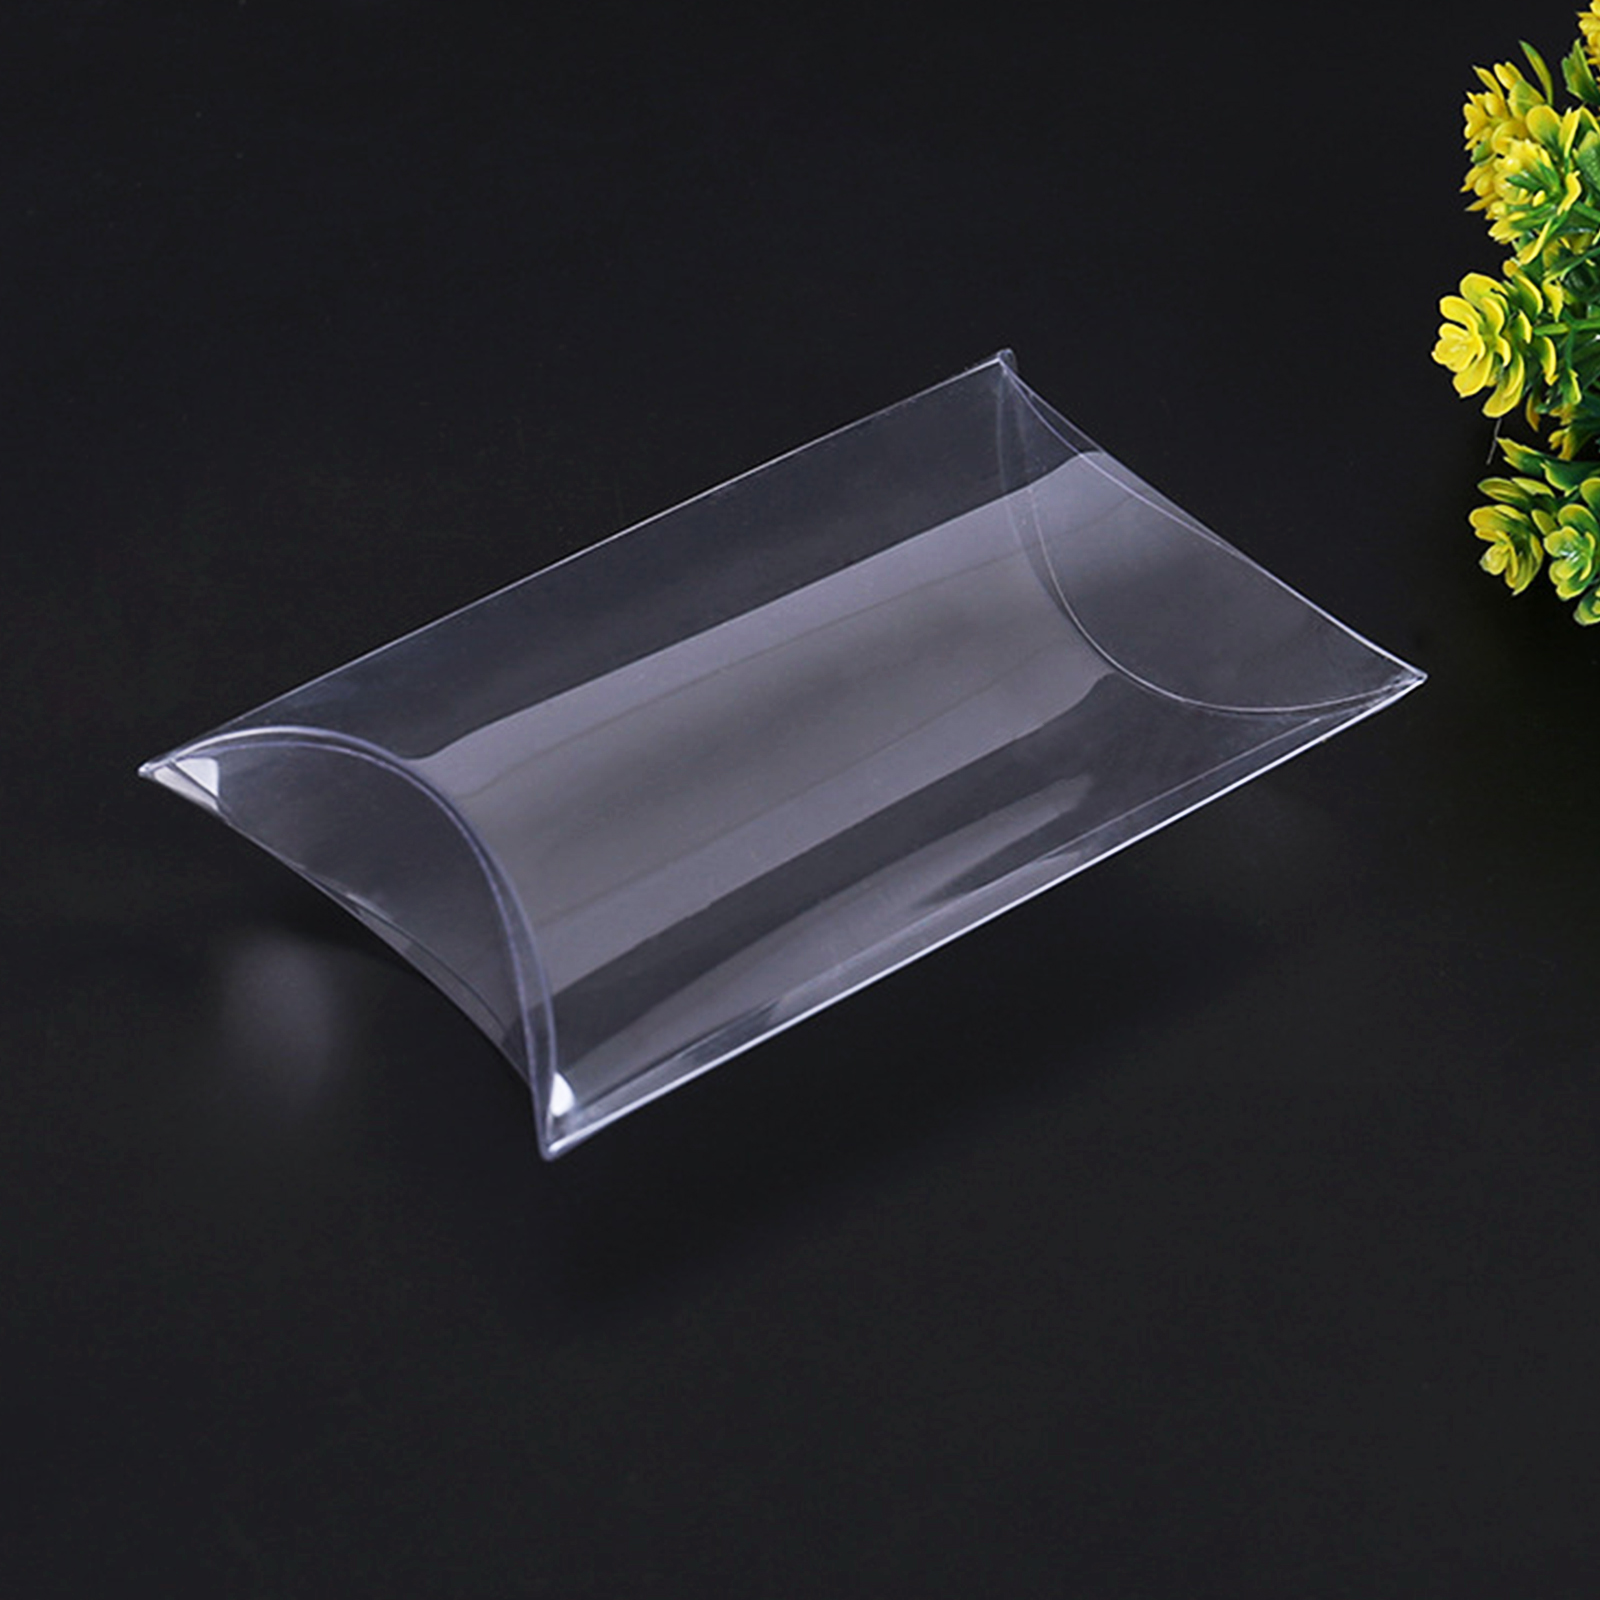 5pcs Wedding Favor Box Transparent Clear Pillow Rectangle Candy Box Chocolate Gift Box For Baby Shower Birthday Festival Party